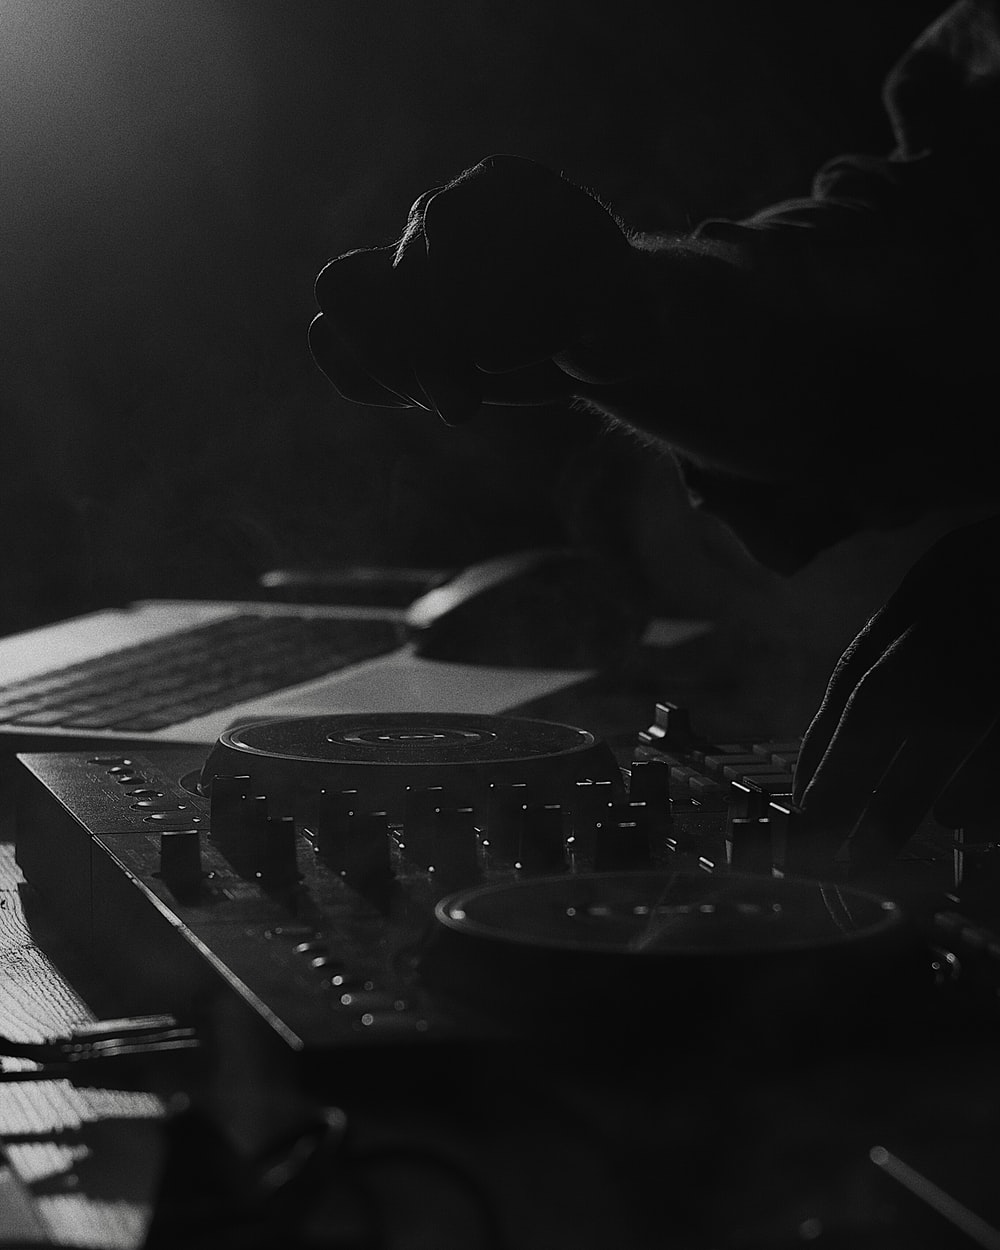 grayscale photo of person playing dj mixer